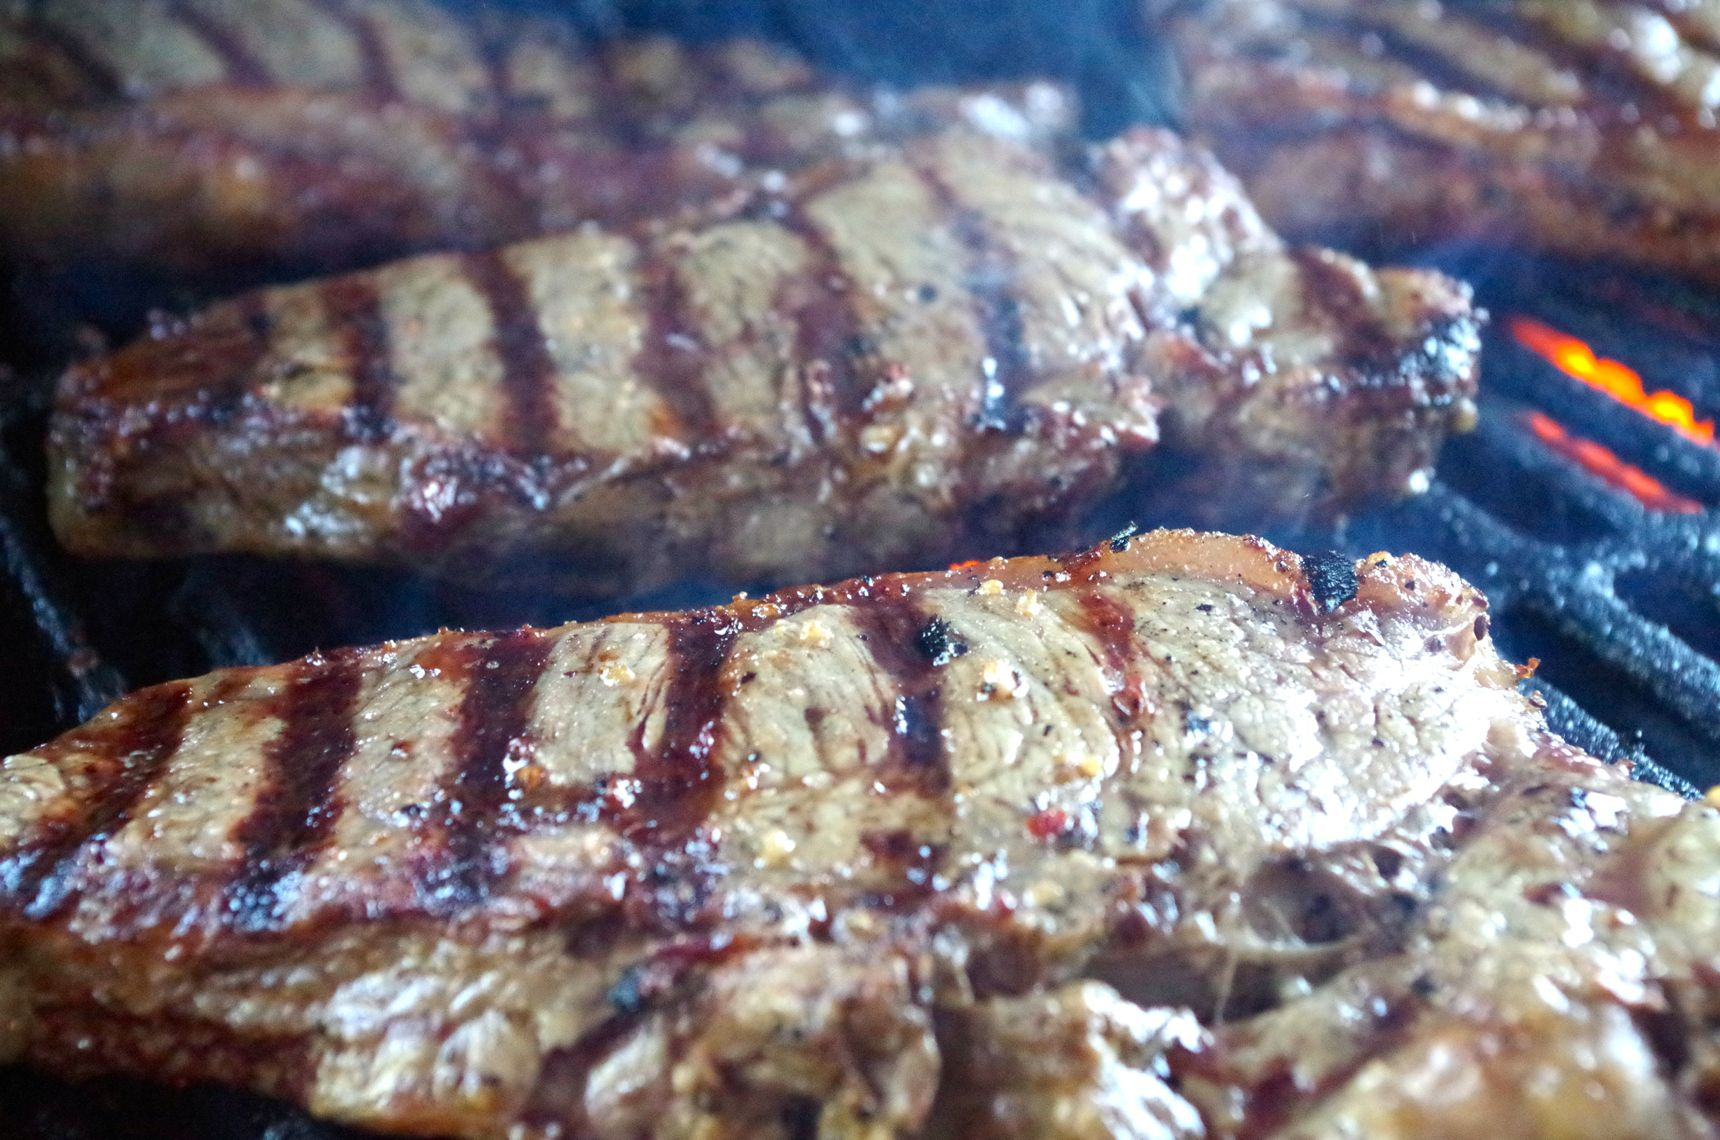 steaks with grill marks on the grill